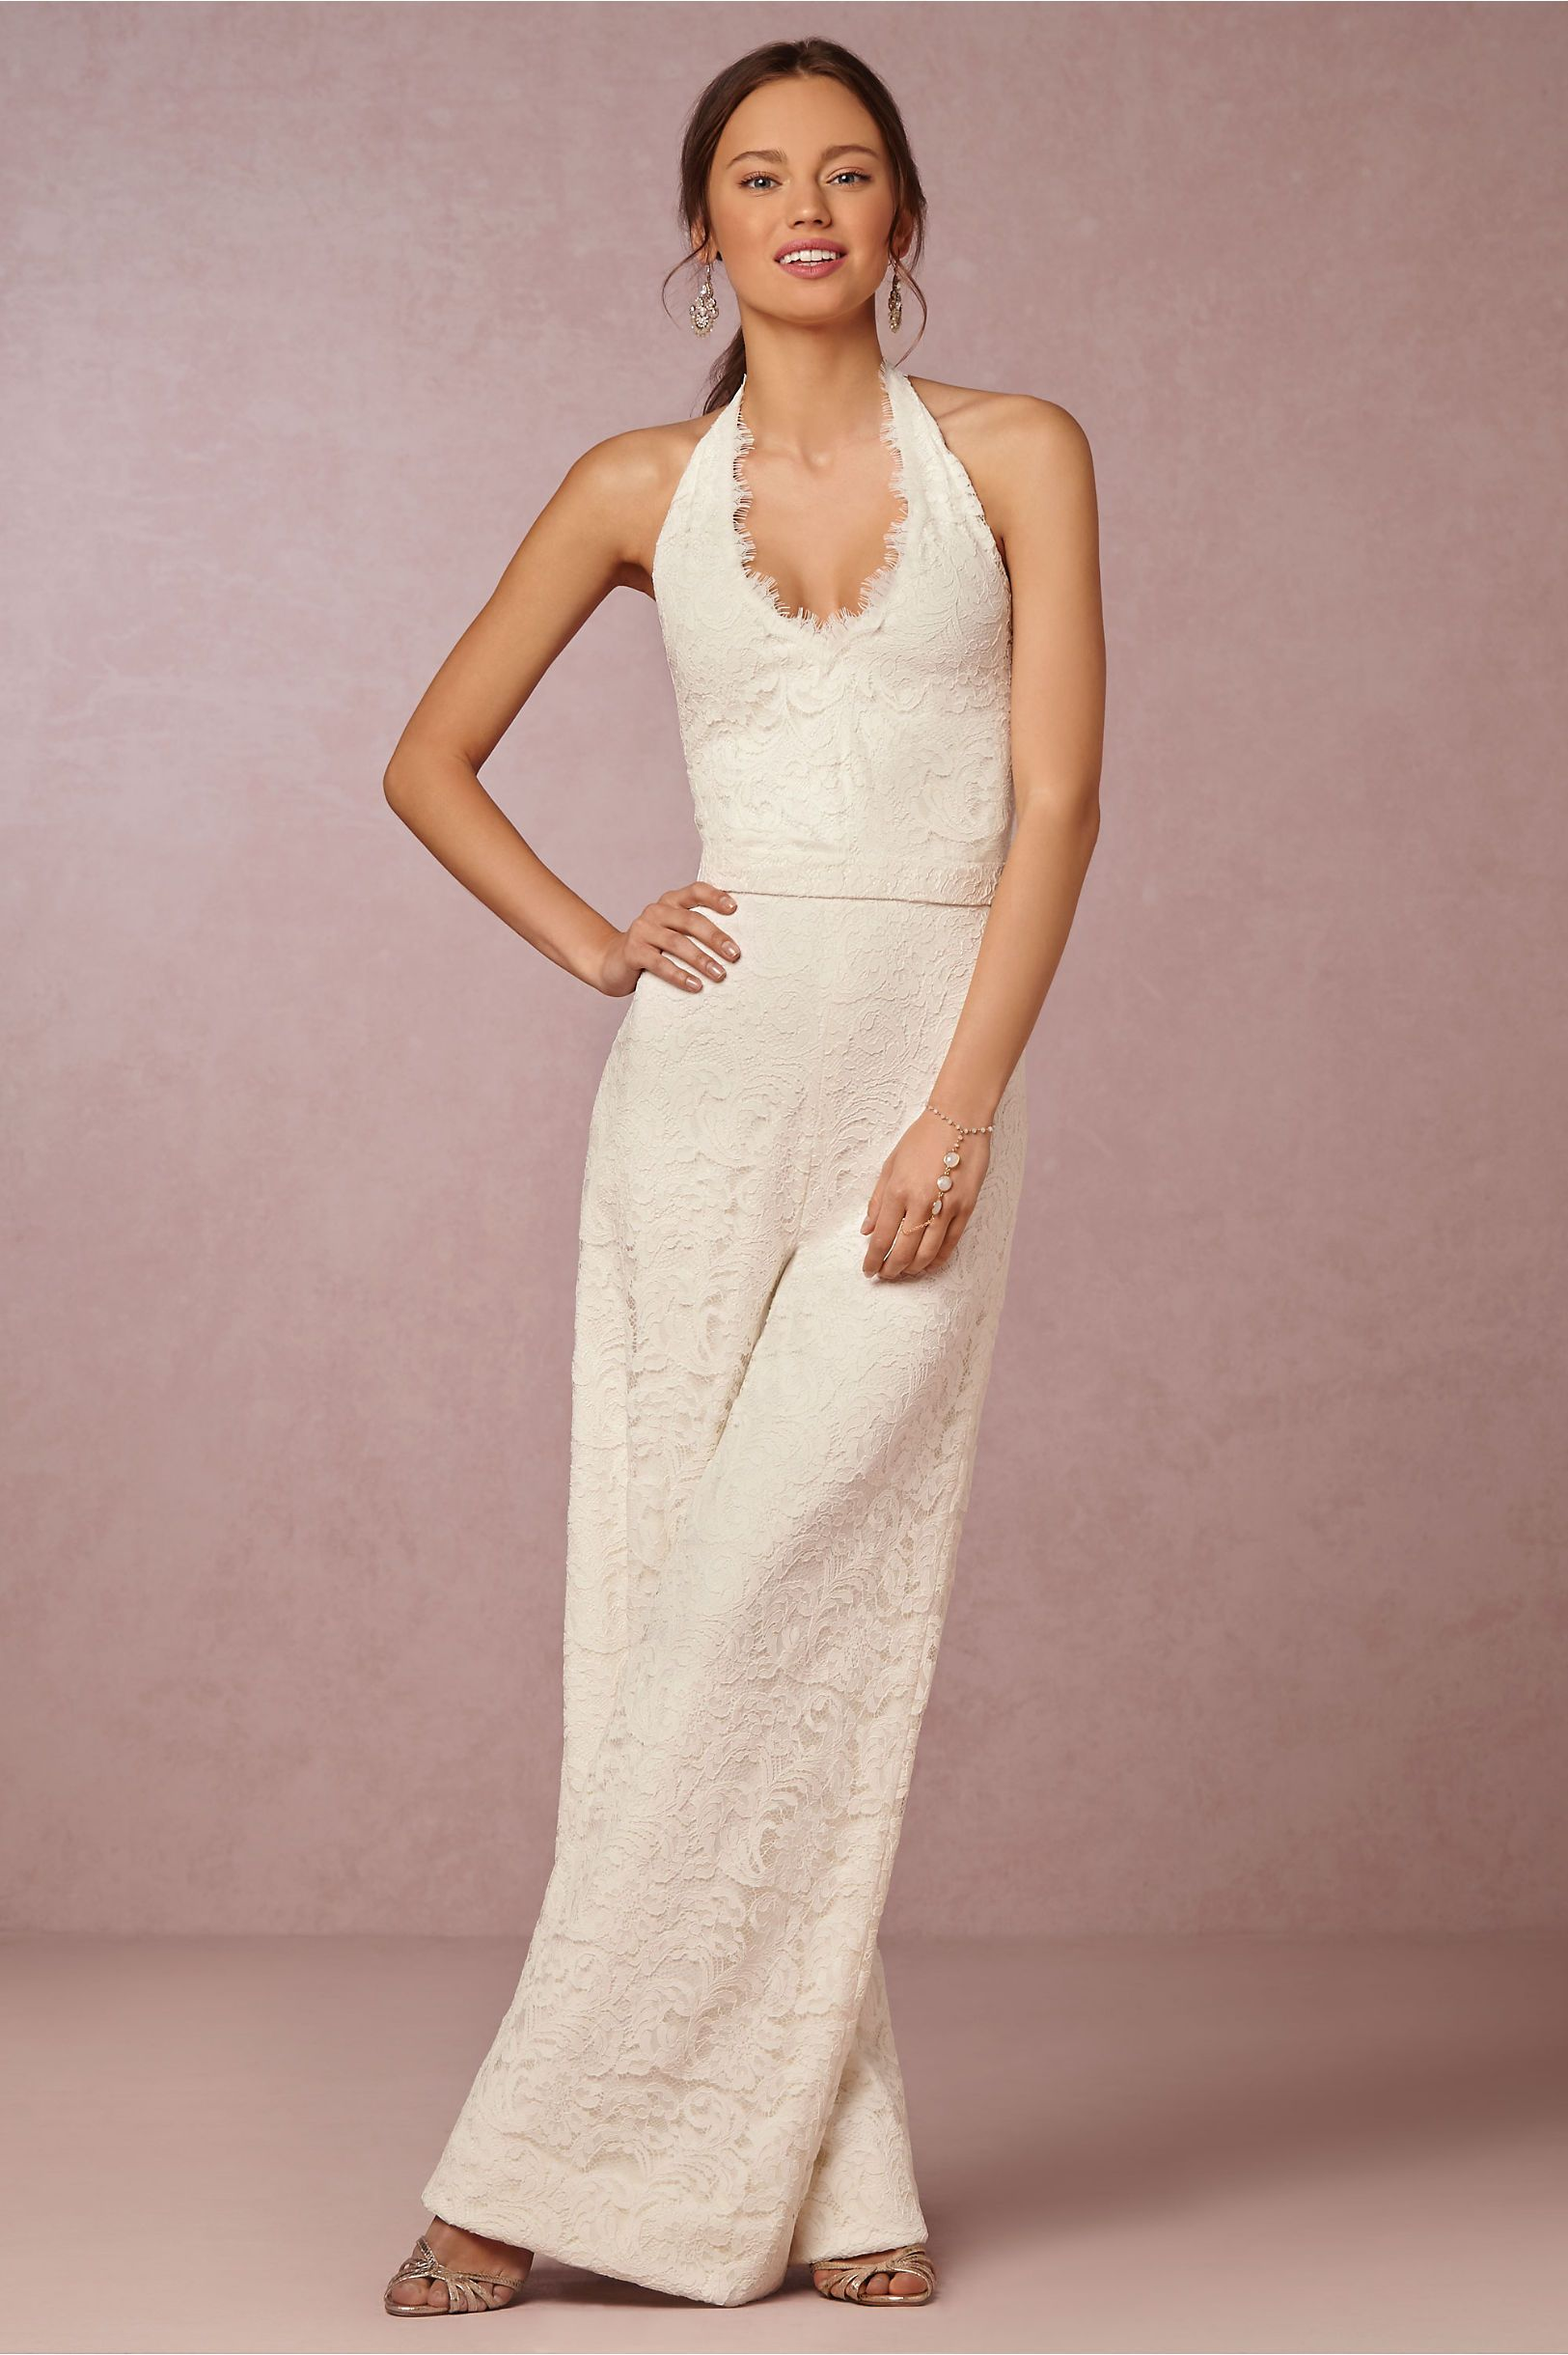 Matilda jumpsuit in bride reception dresses at bhldn - Jumpsuit hochzeit ...